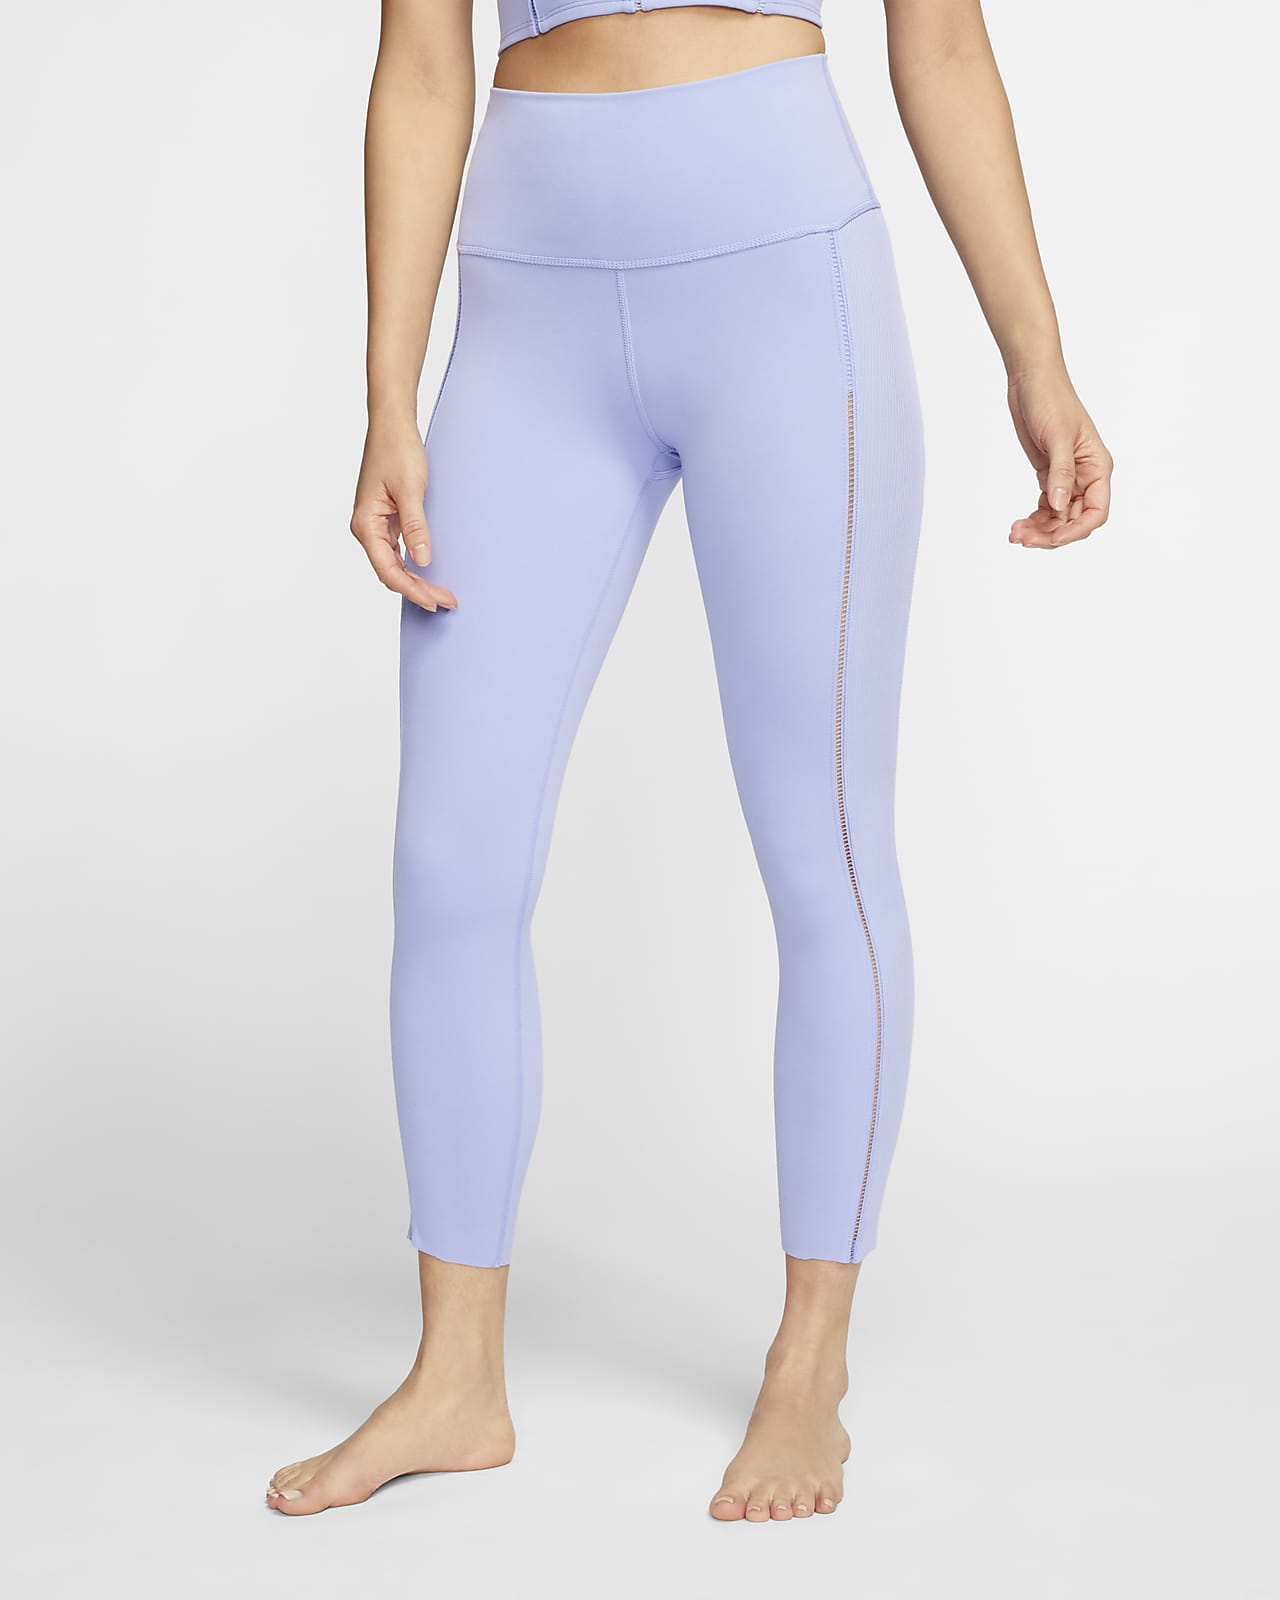 Nike Yoga Luxe Women's Infinalon 7/8 Ribbed Leggings